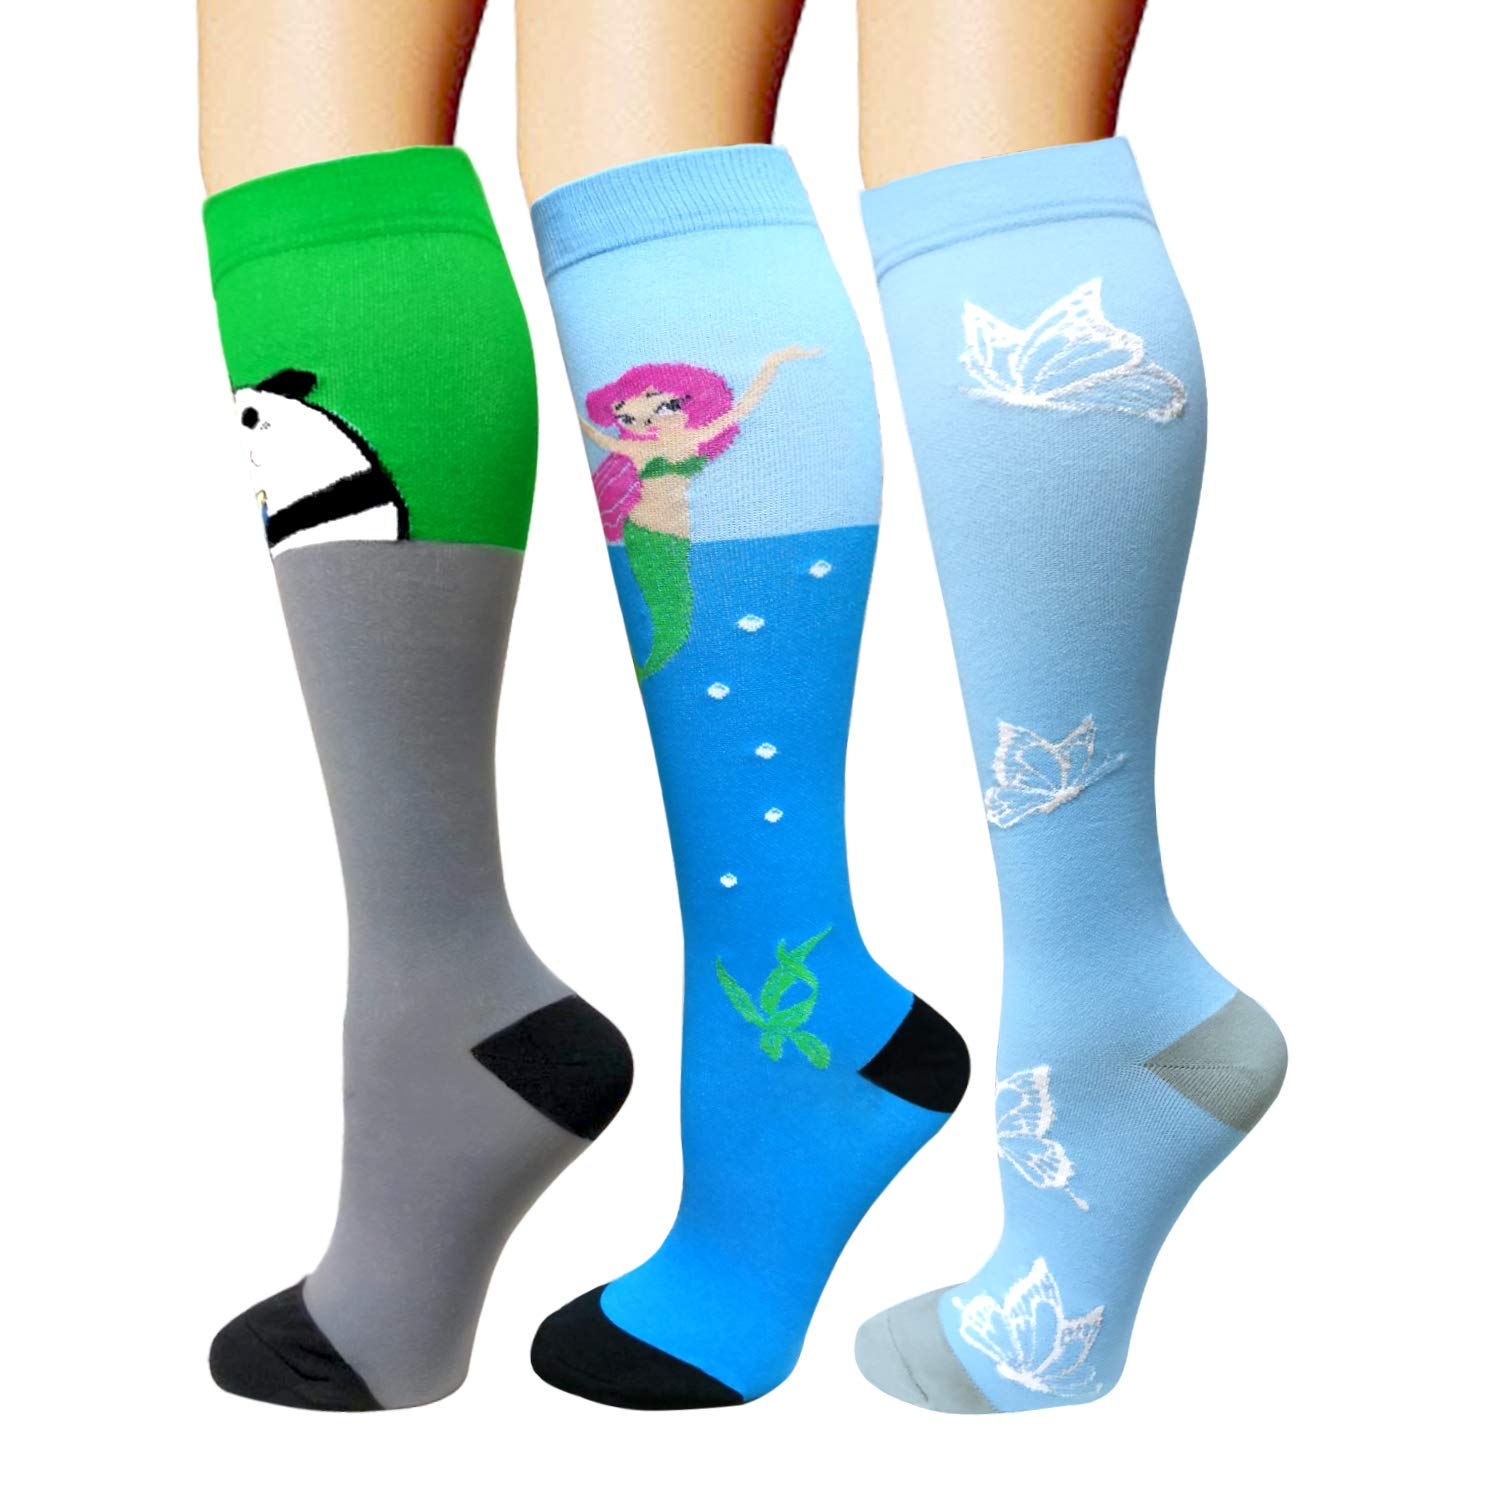 0627f79dbbd Compression Socks For Men   Women - 3 6 Pairs - Best Sports Socks for  Running